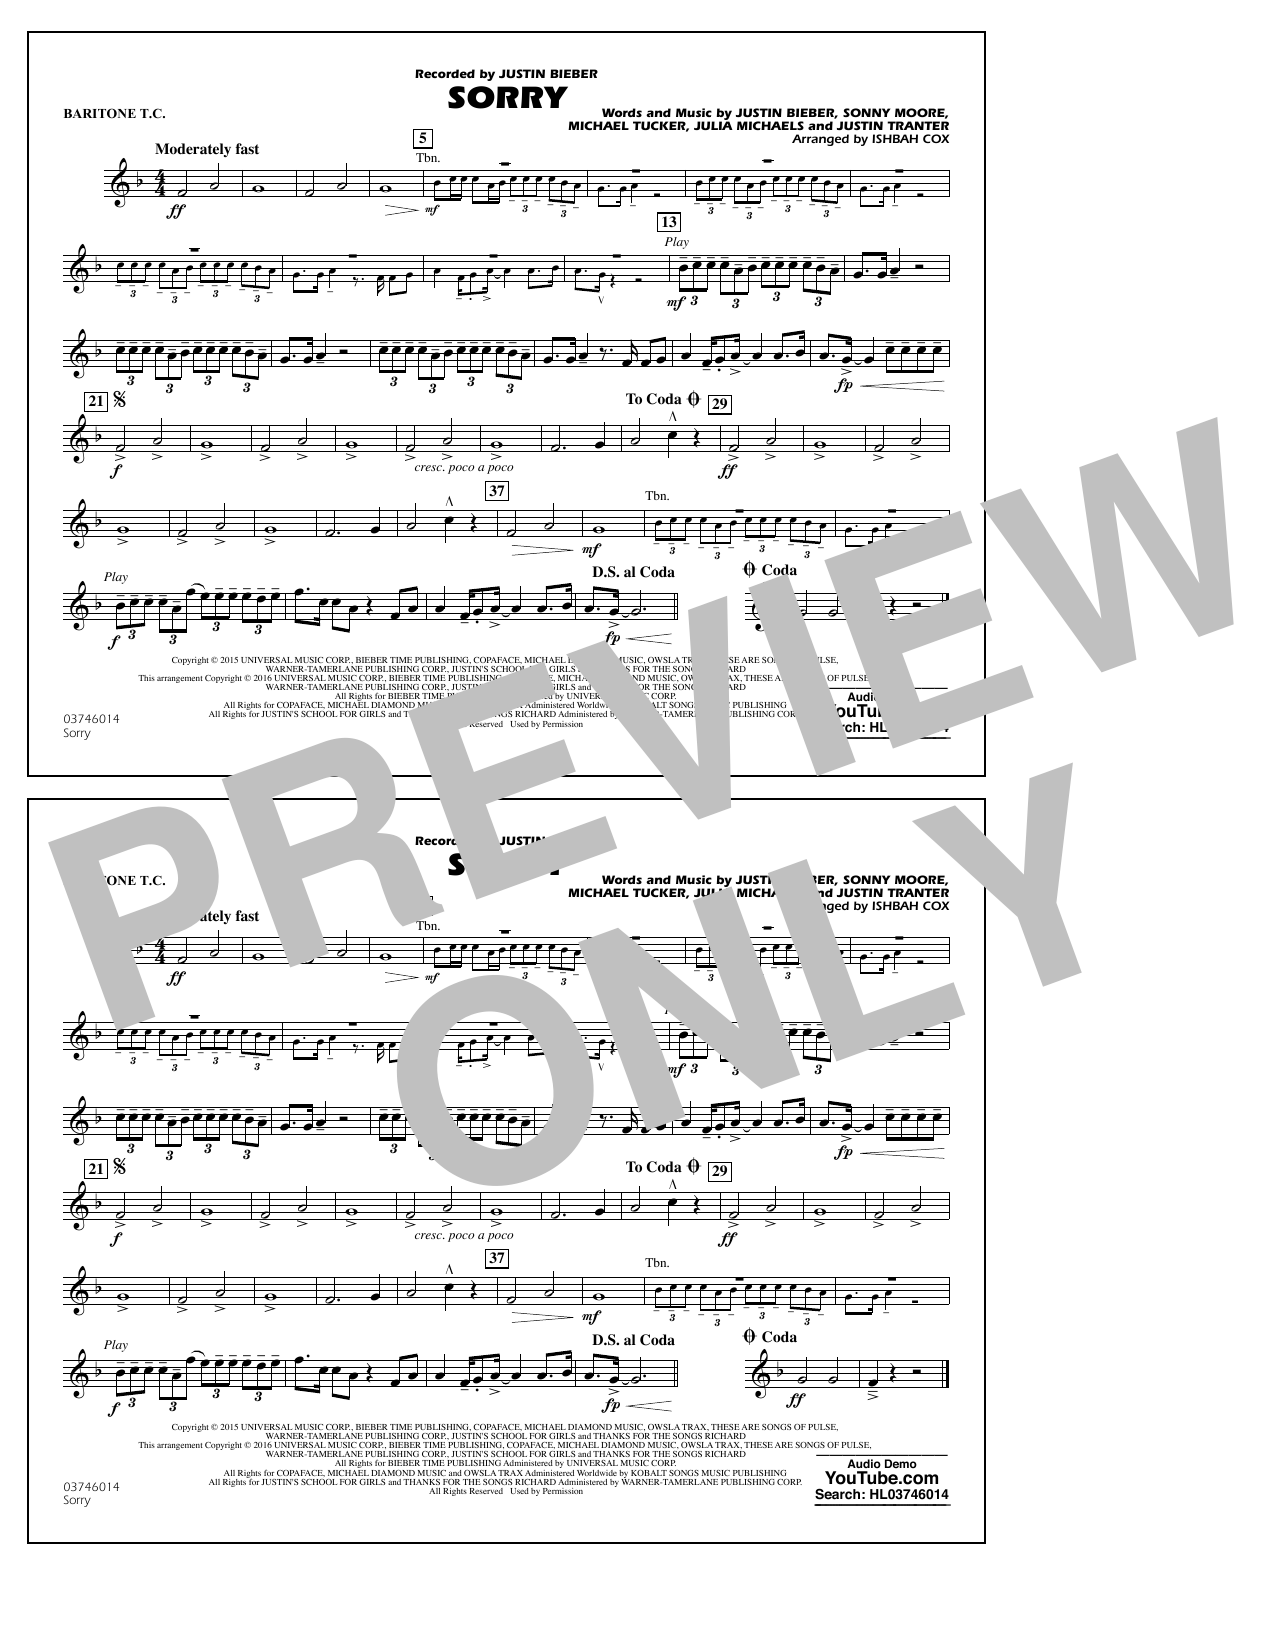 Sorry - Baritone T.C. (Marching Band)